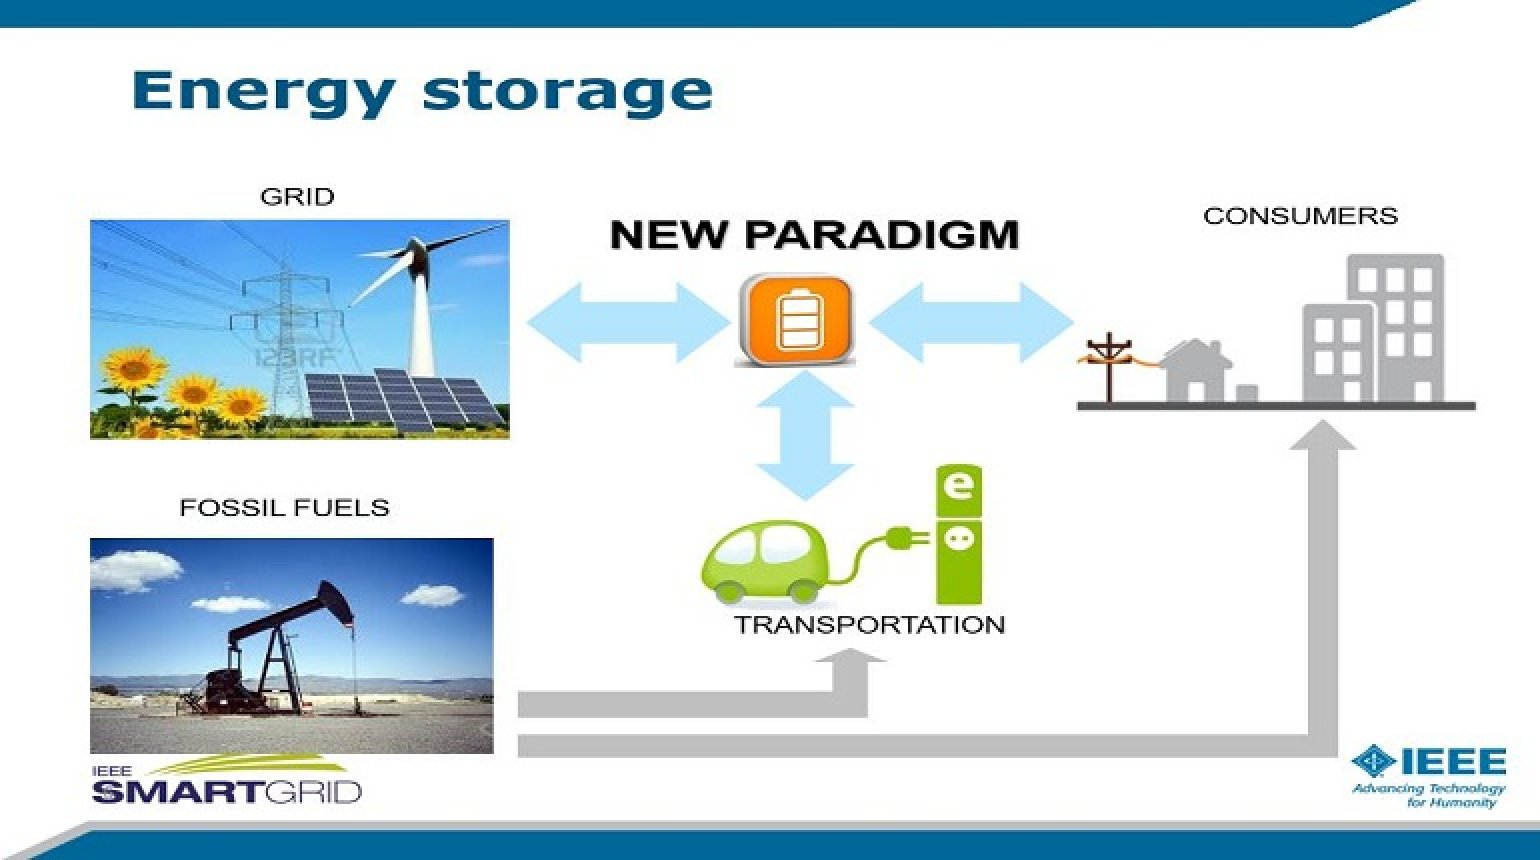 Enabling Smart Grids: Energy Storage Technologies, Opportunities and Challenges presented by Lucia Gauchia